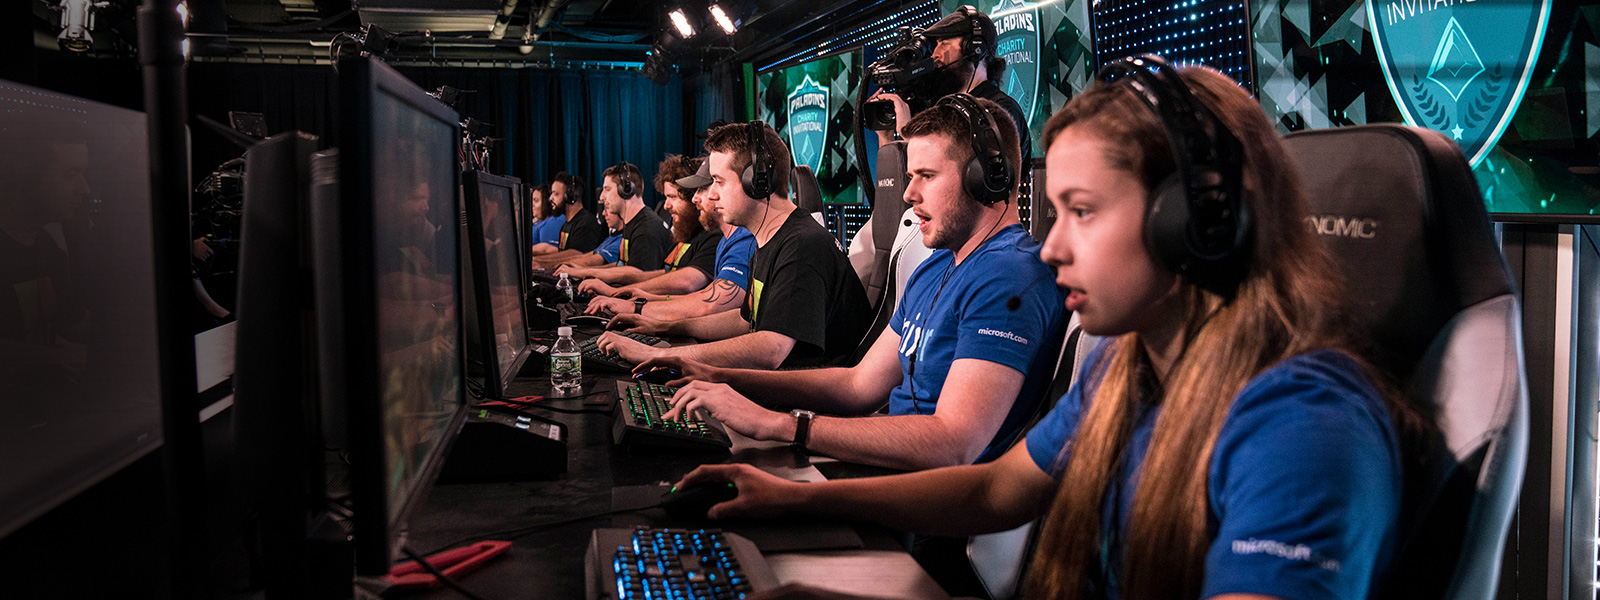 Row of gamers in action at the Esports and Gaming Studio.